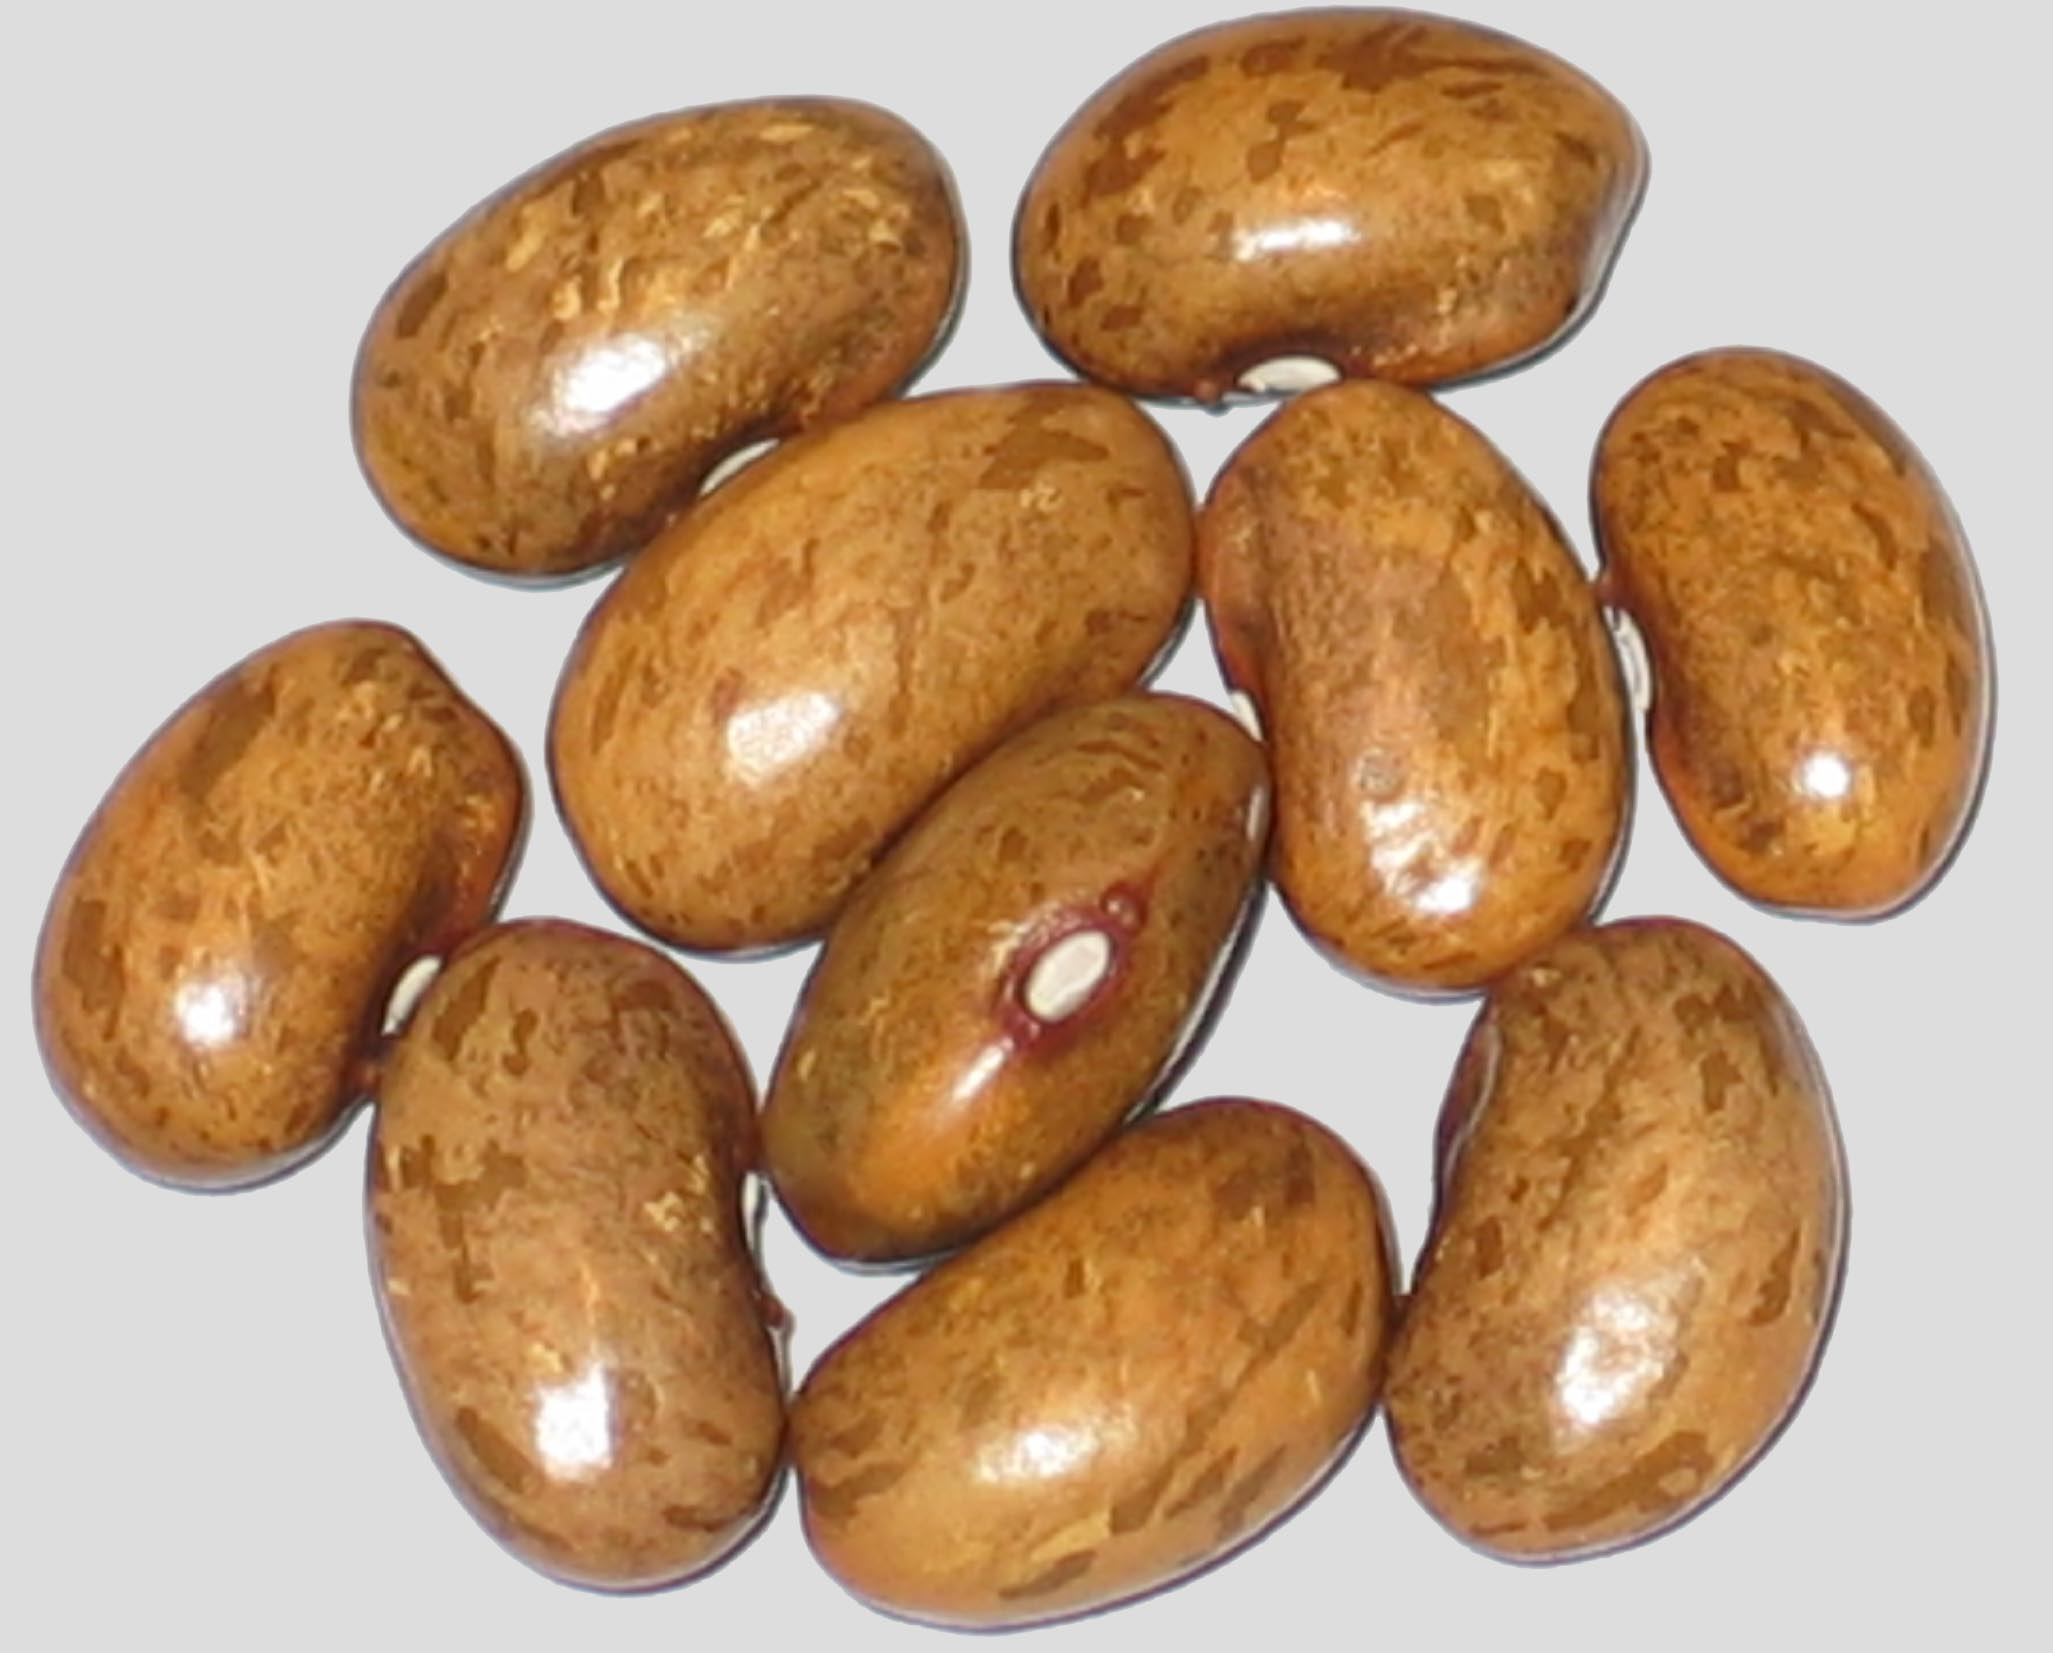 image of Gopher beans